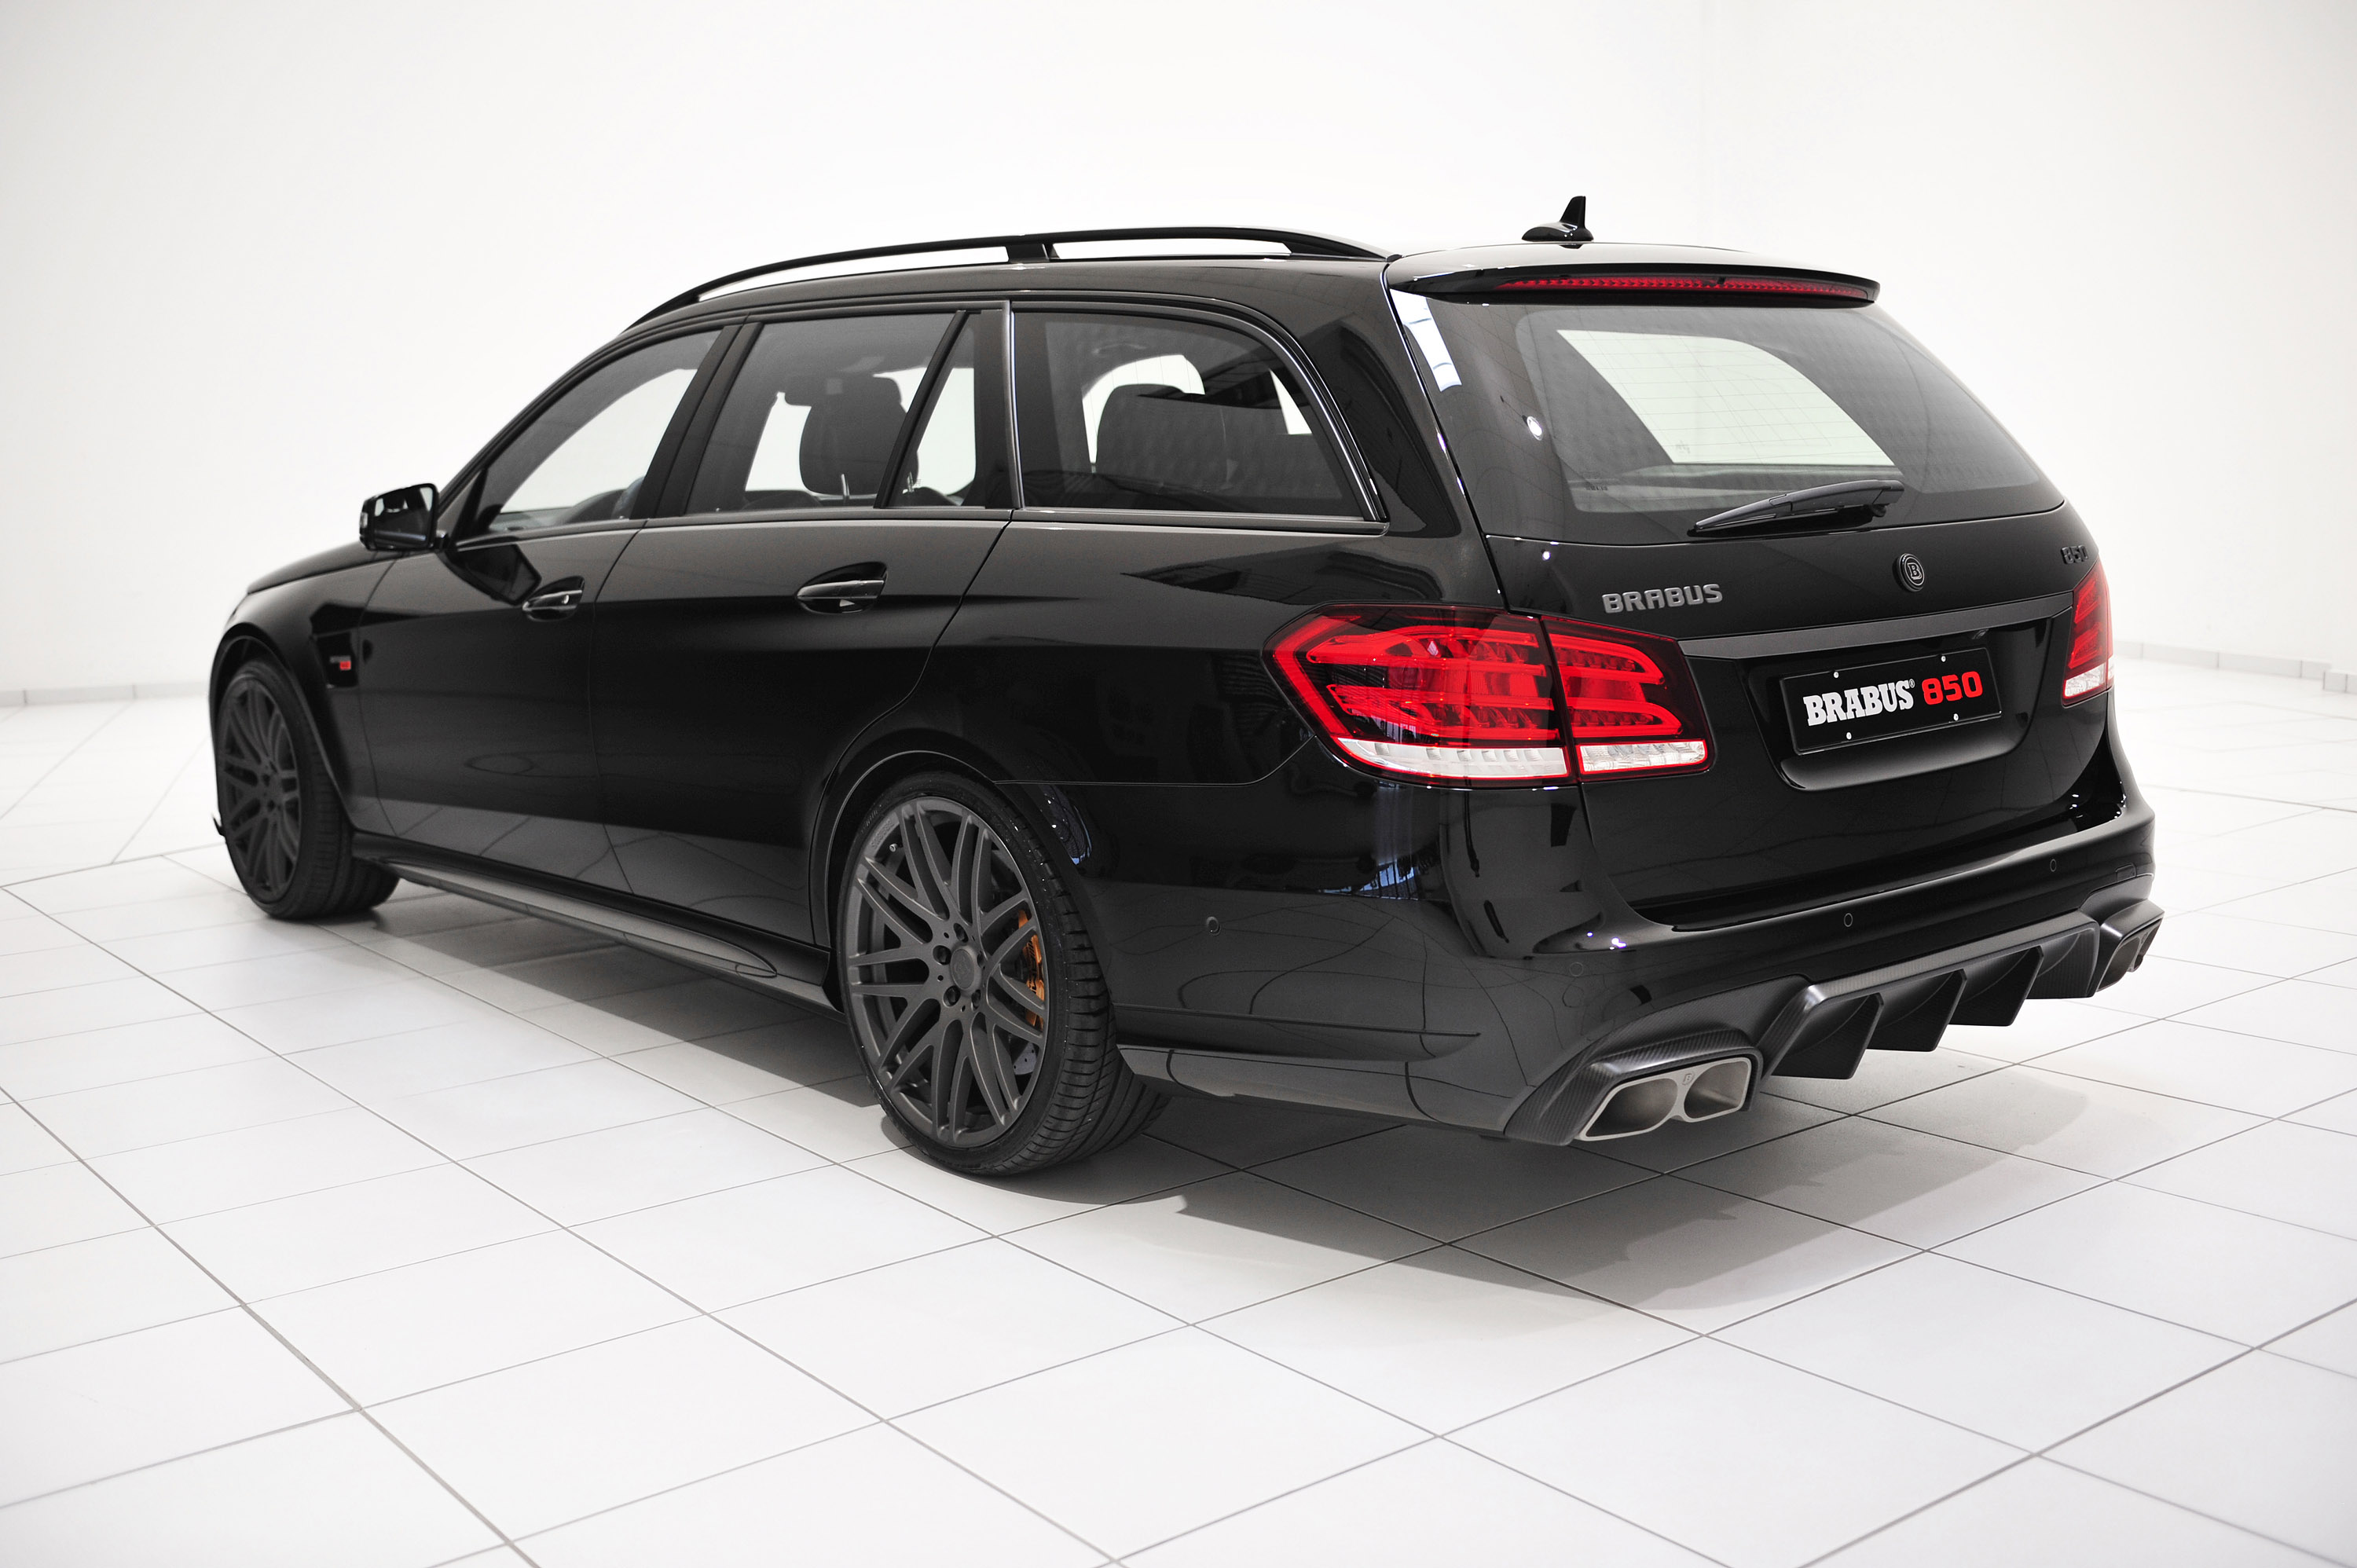 Brabus 850 6 0 biturbo mercedes benz e63 amg picture 91890 for Mercedes benz 850